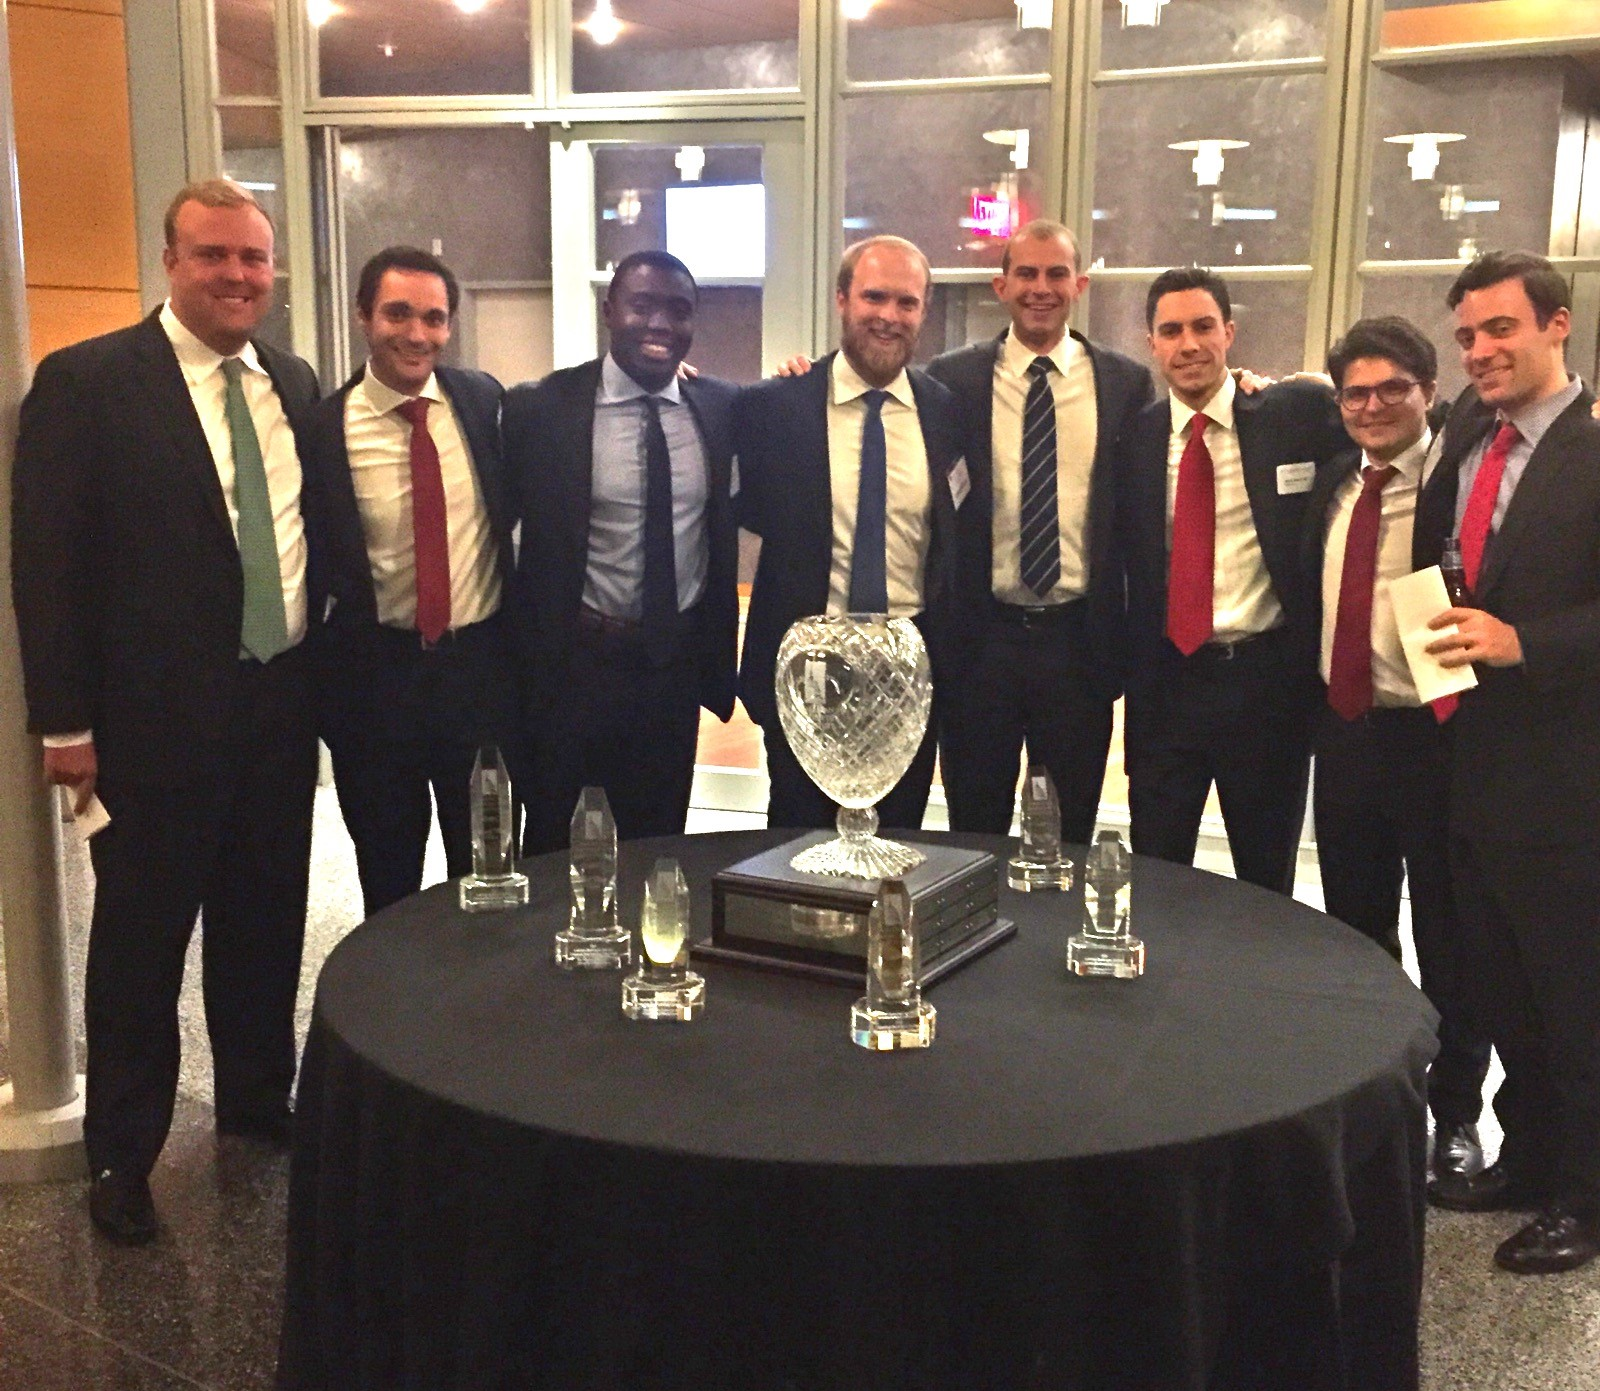 1st and 2nd place at 11th Annual ABI Corporate Restructuring Competition